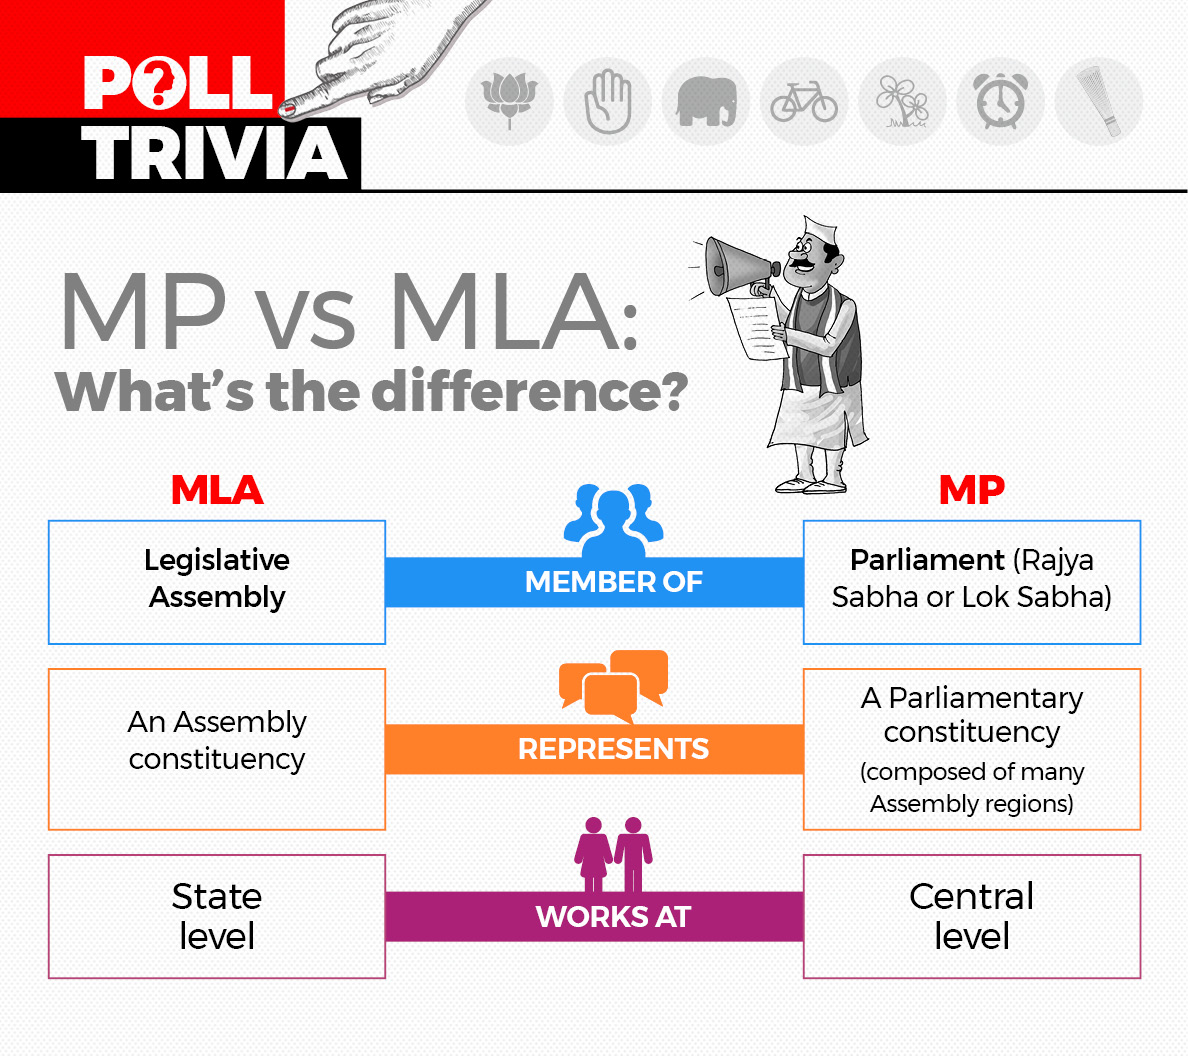 MP vs MLA: What is the difference?